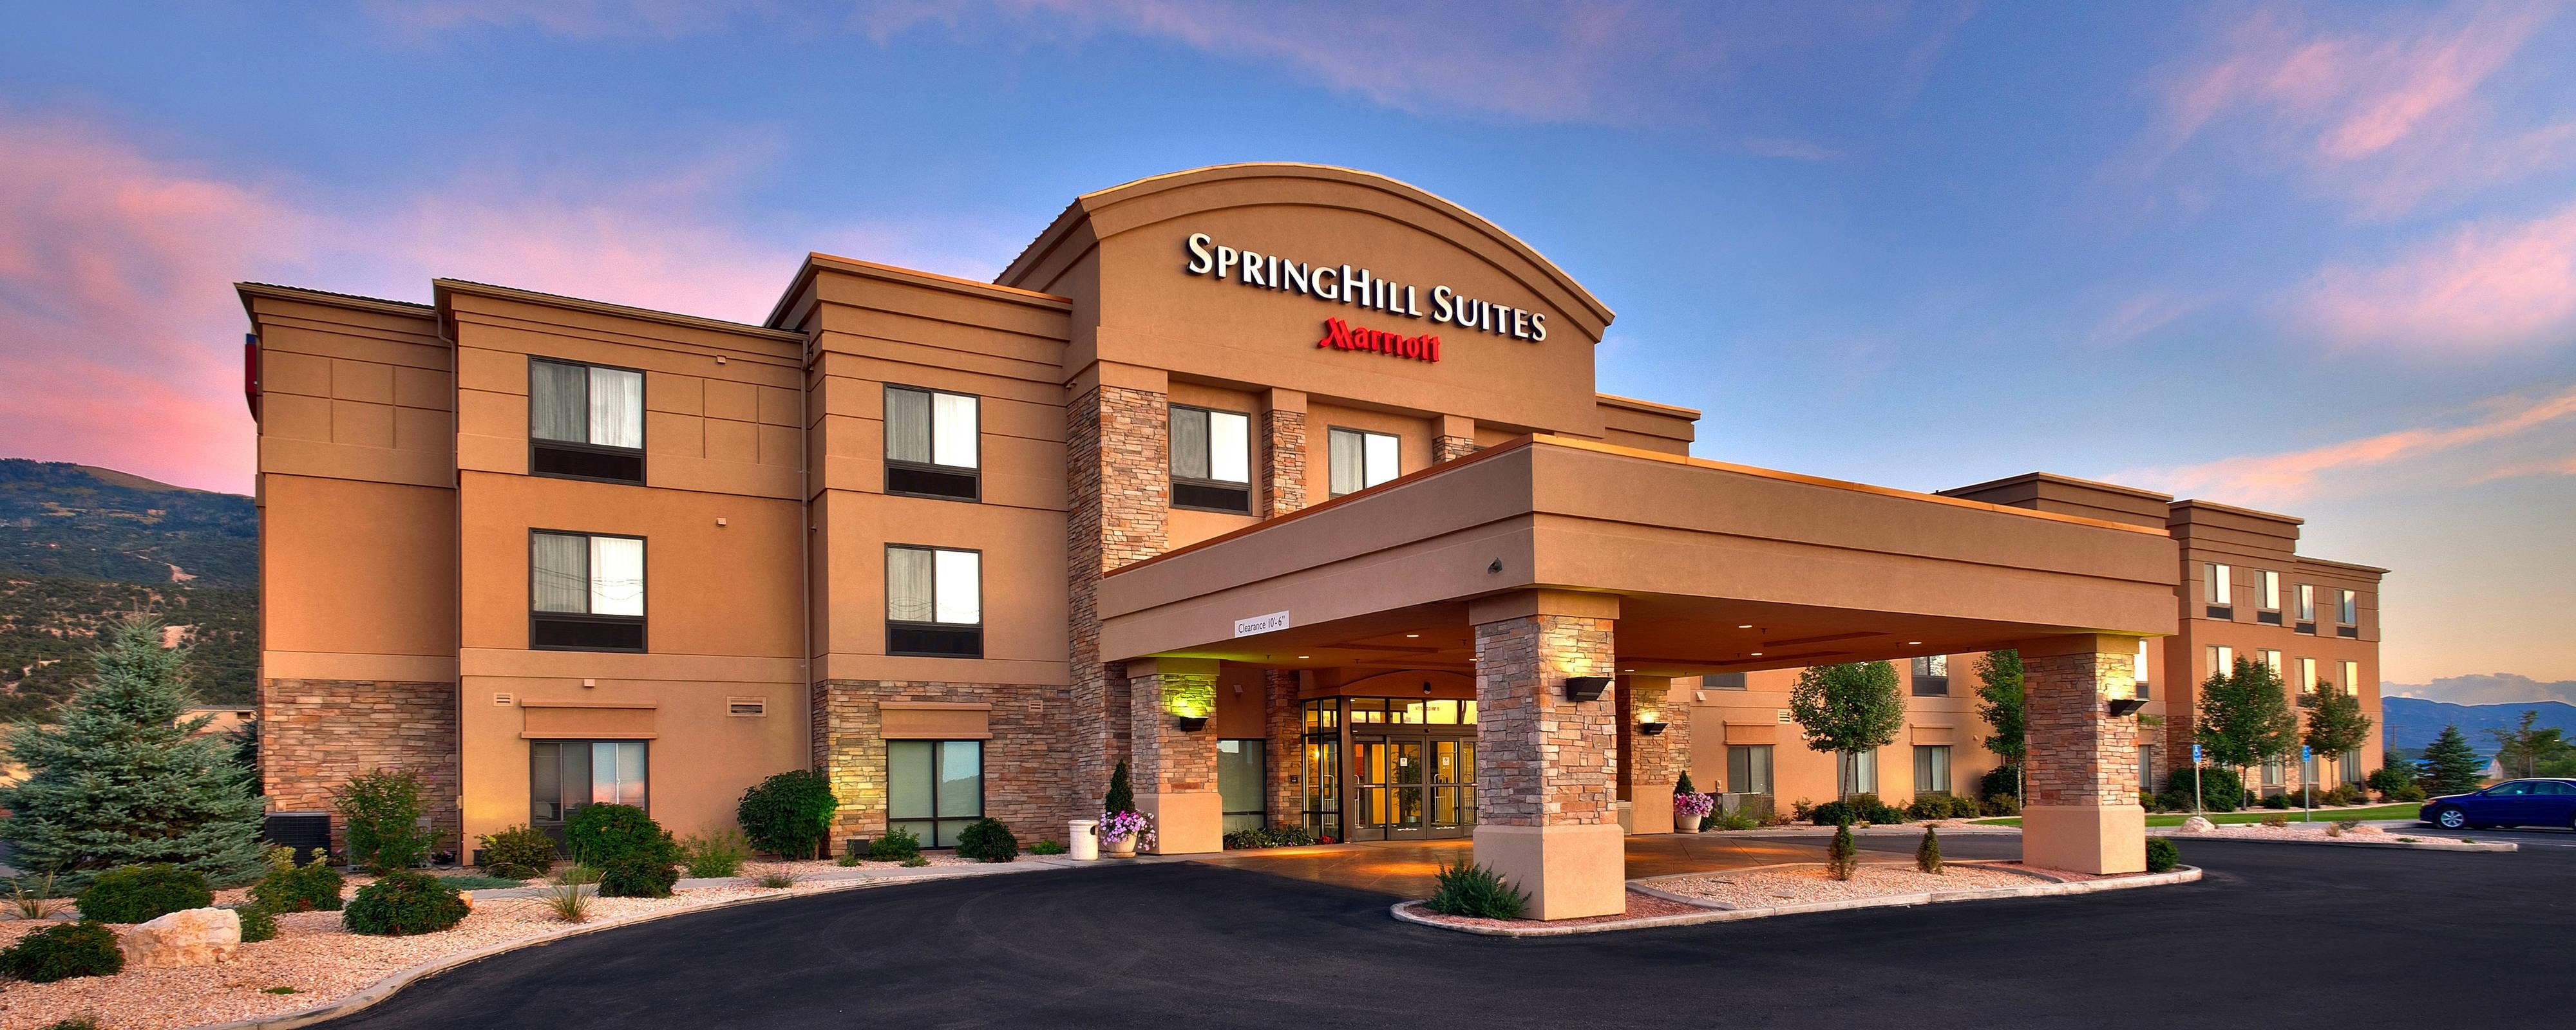 SpringHill Suites in Cedar City, UT